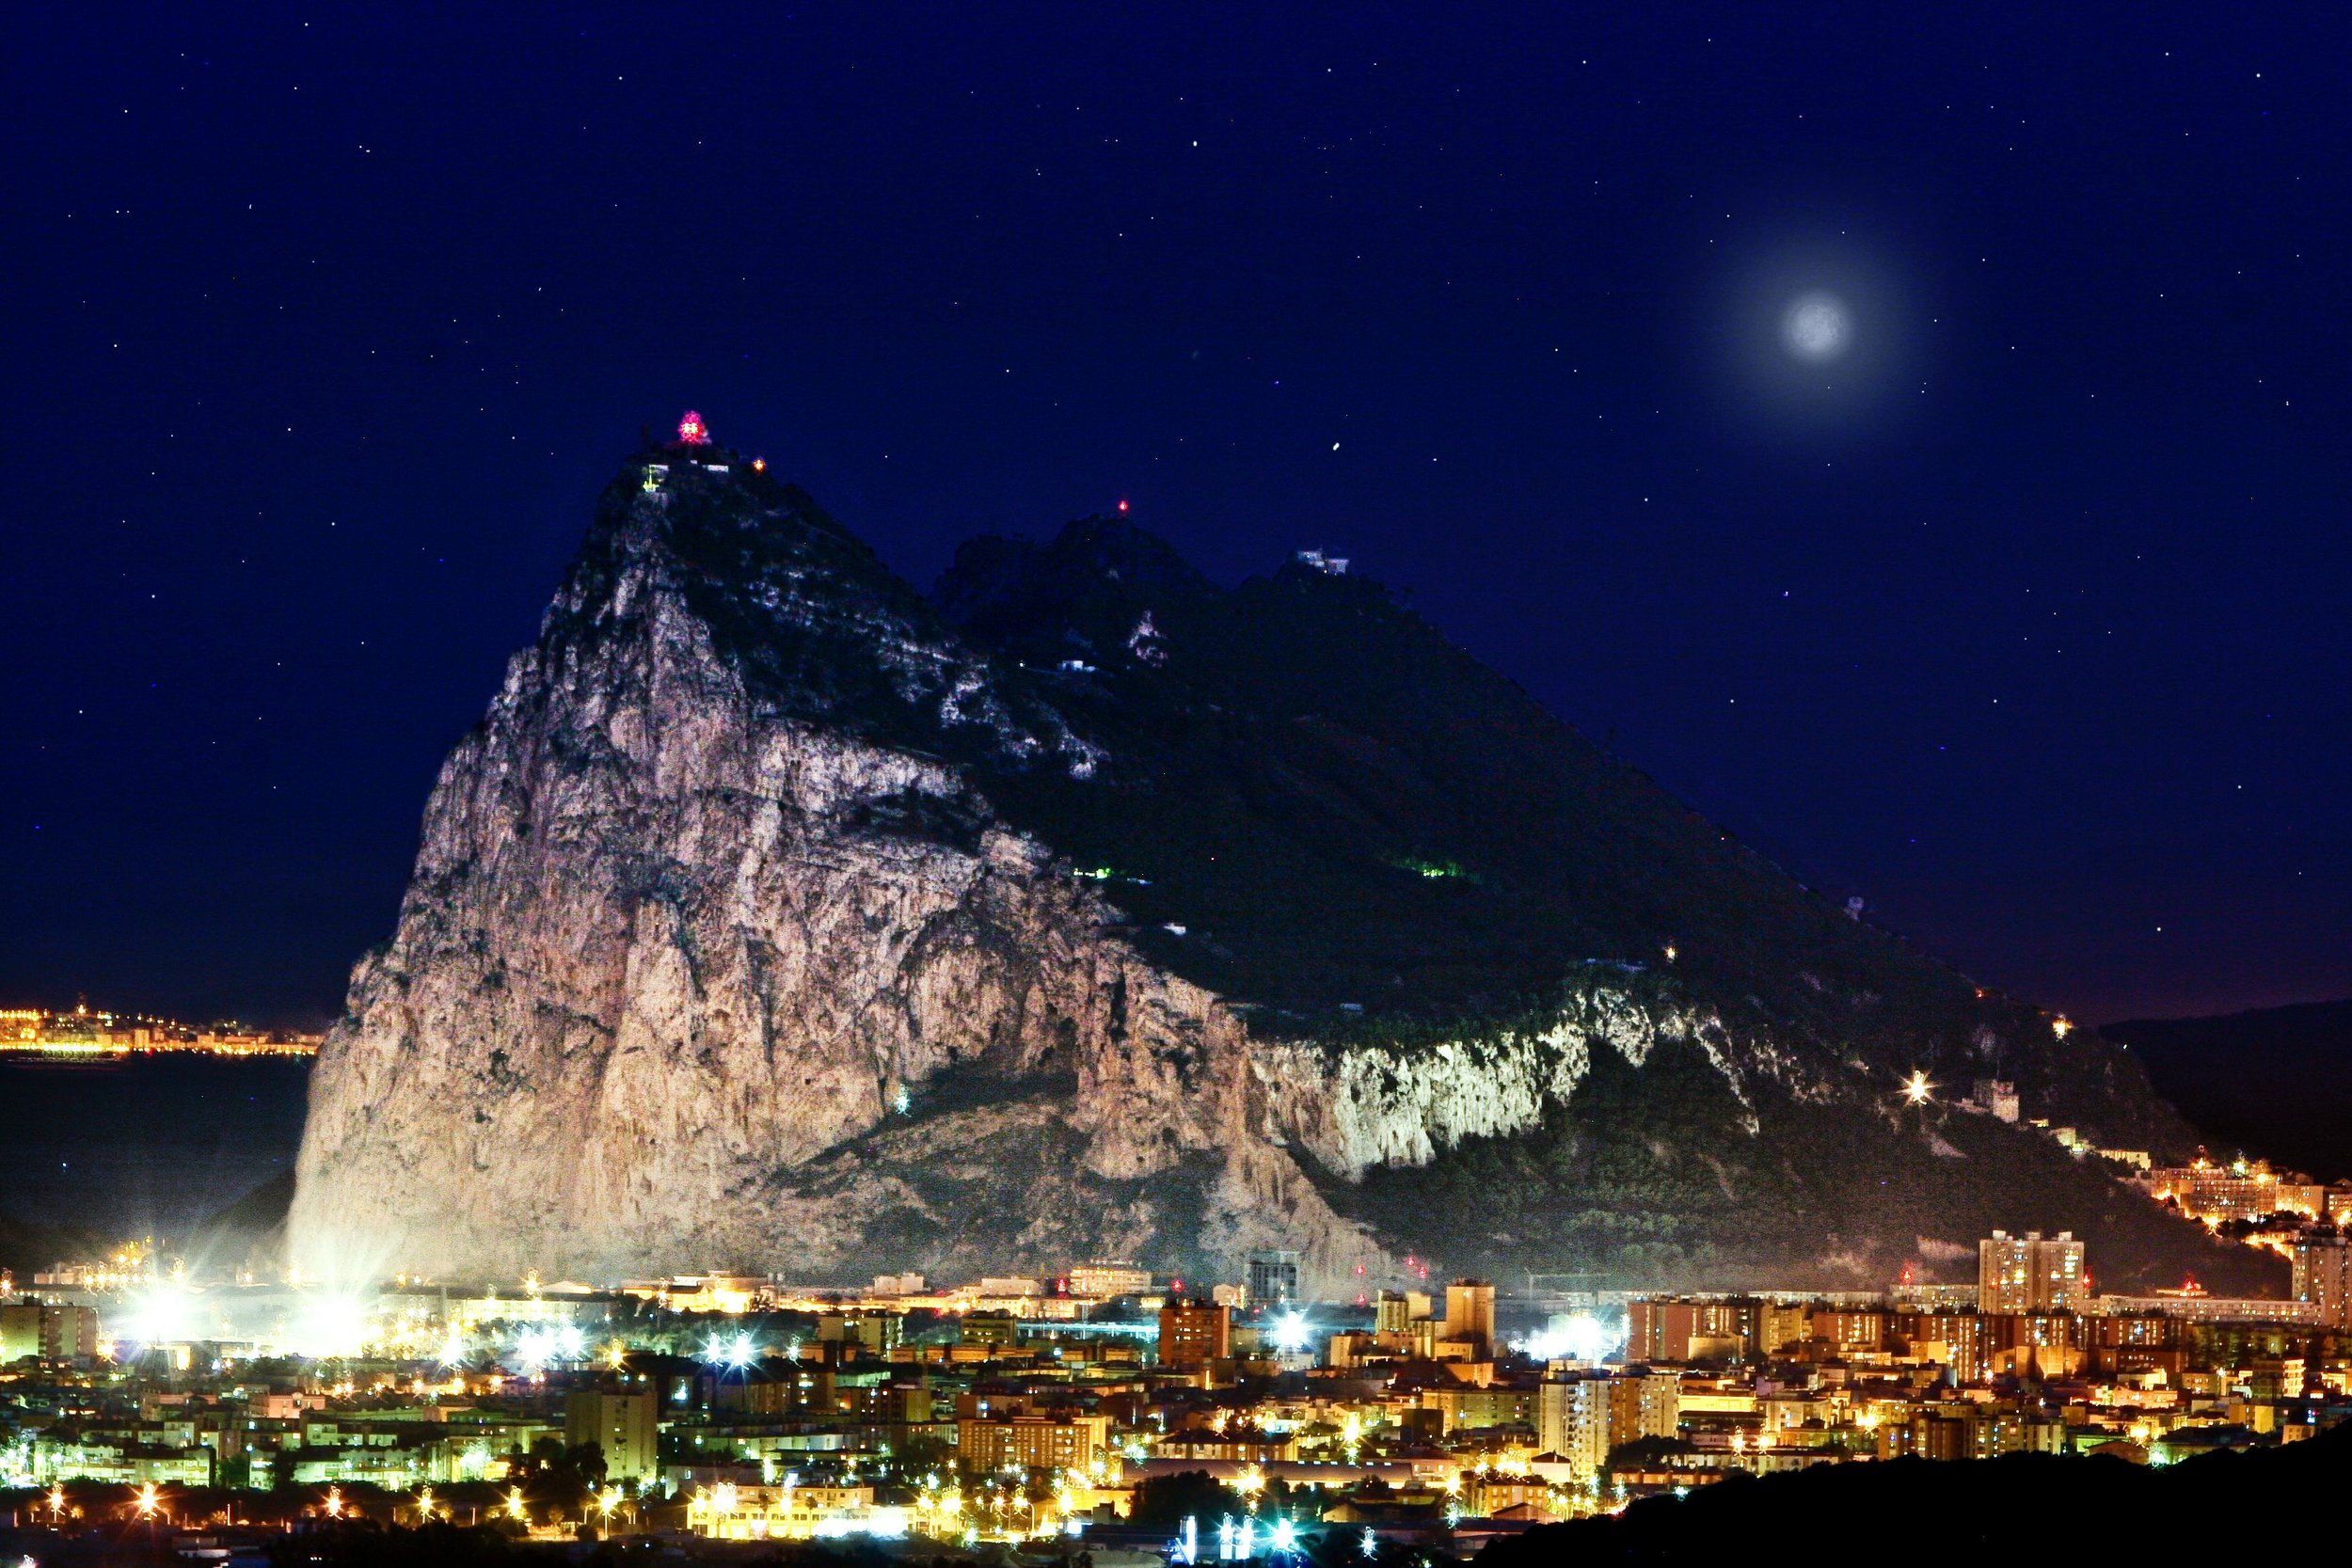 gibraltar-at-night.jpg